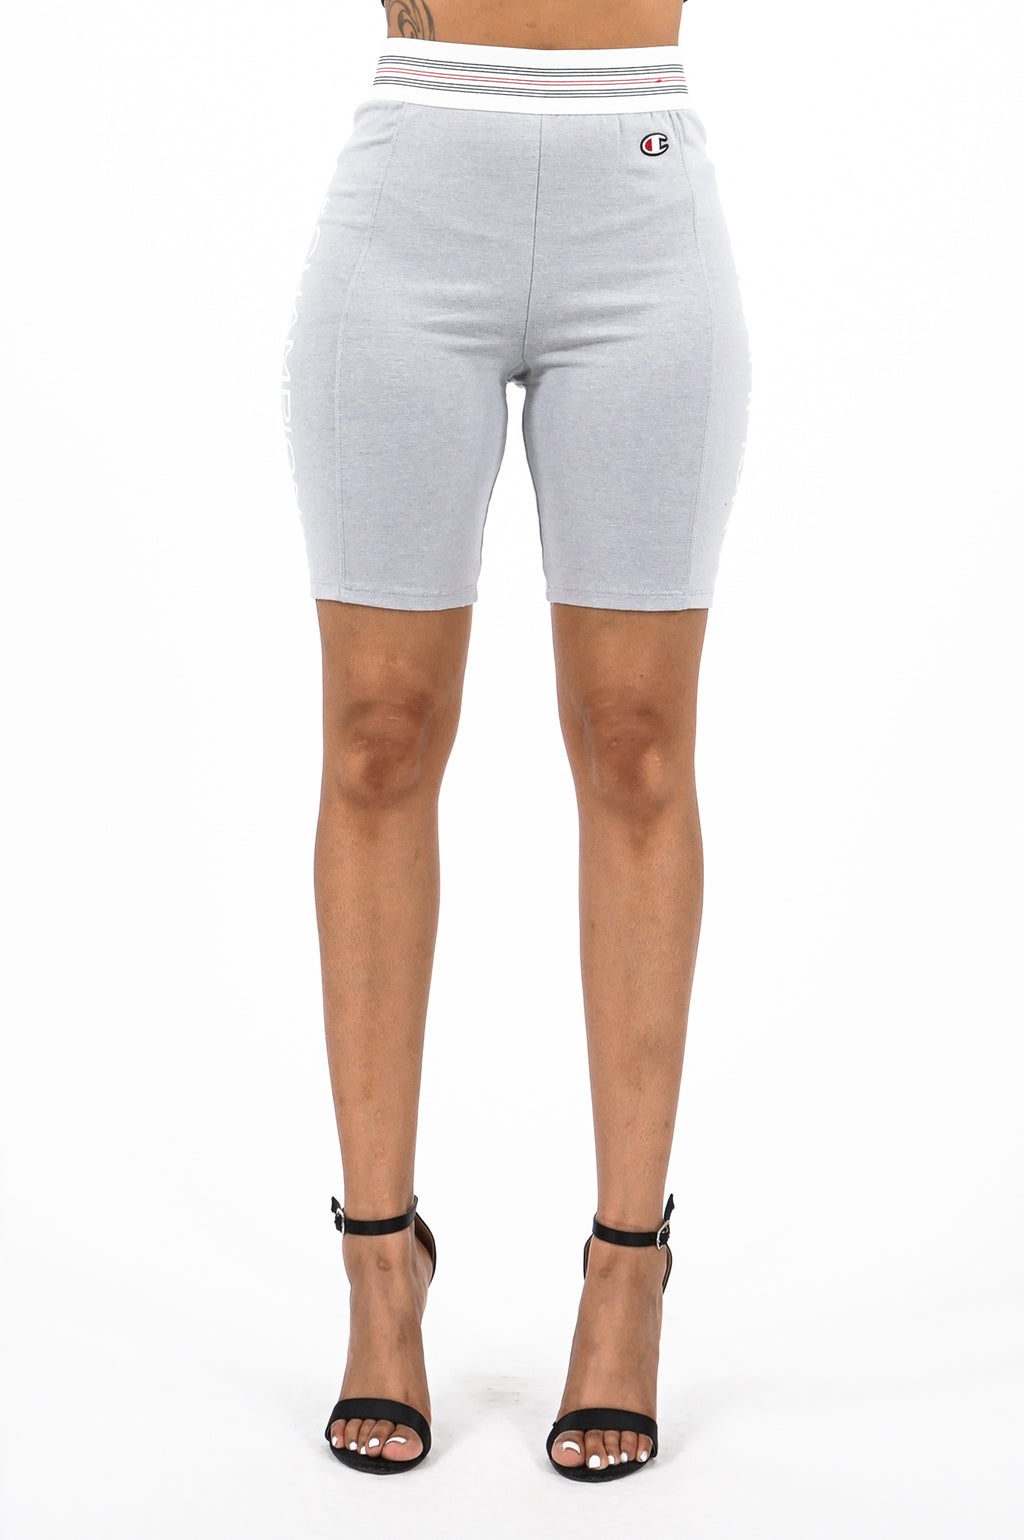 Champion Women High Waist Bike Short